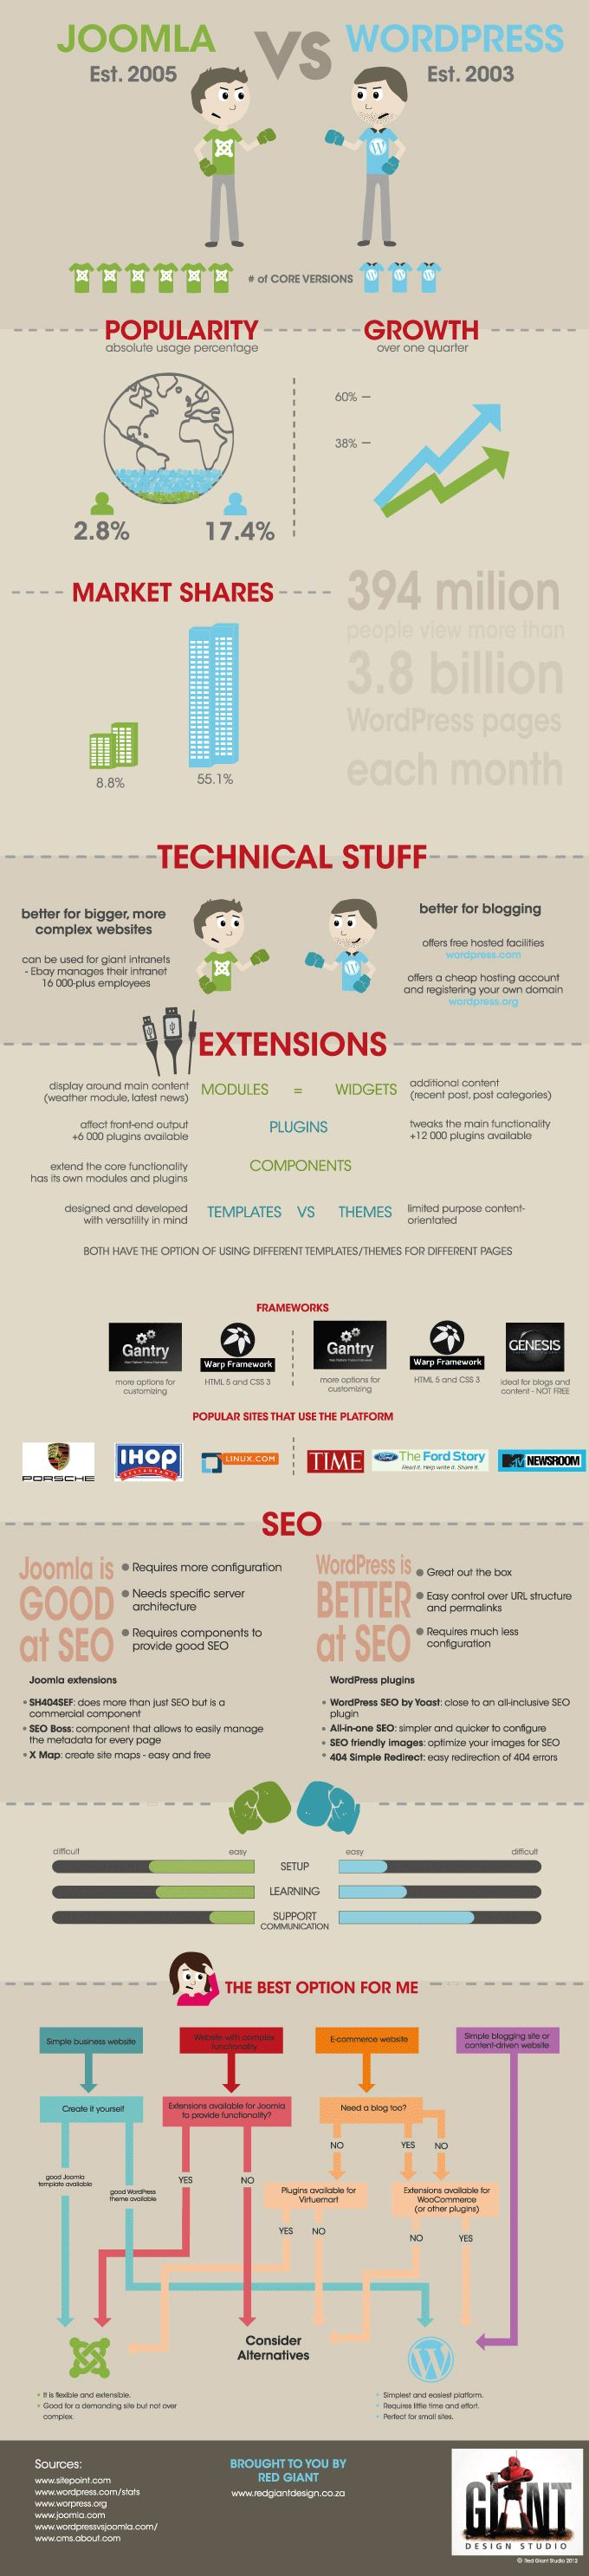 e-marketing & technology insights: Trying to Decide between a Joomla or Word Press Website? This InfoGraphic will help...